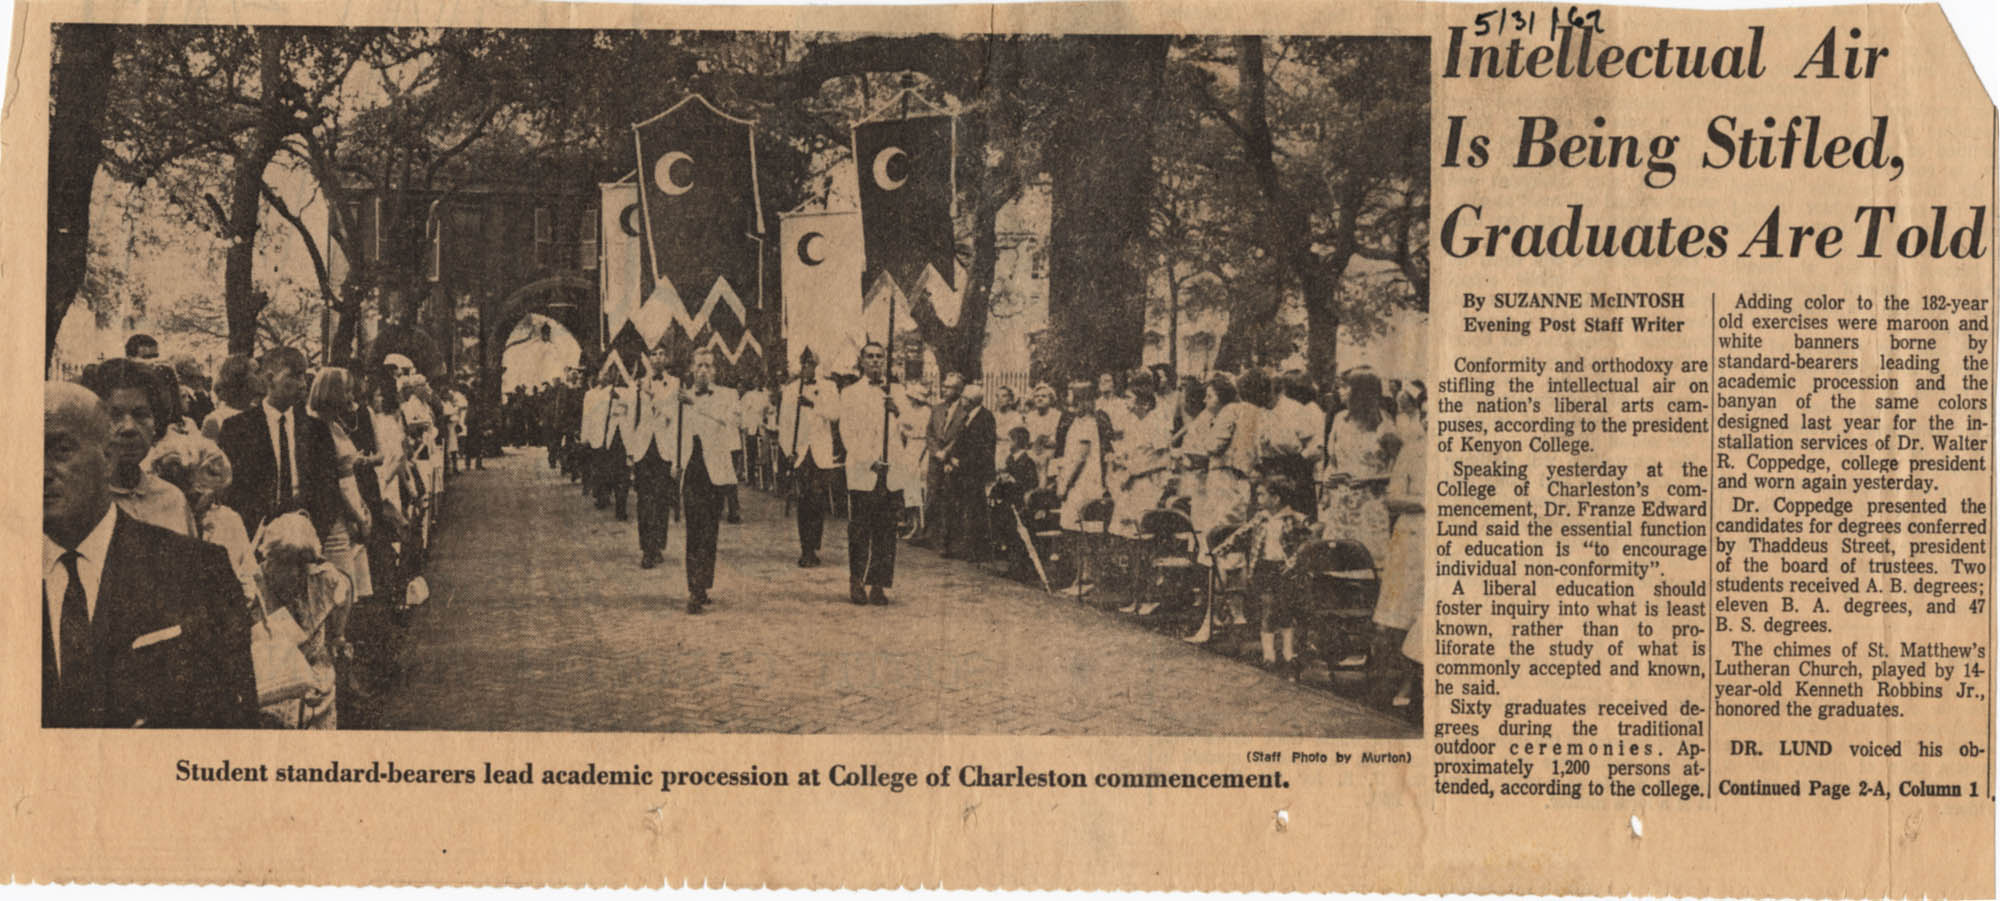 Clipping about 1967 commencement